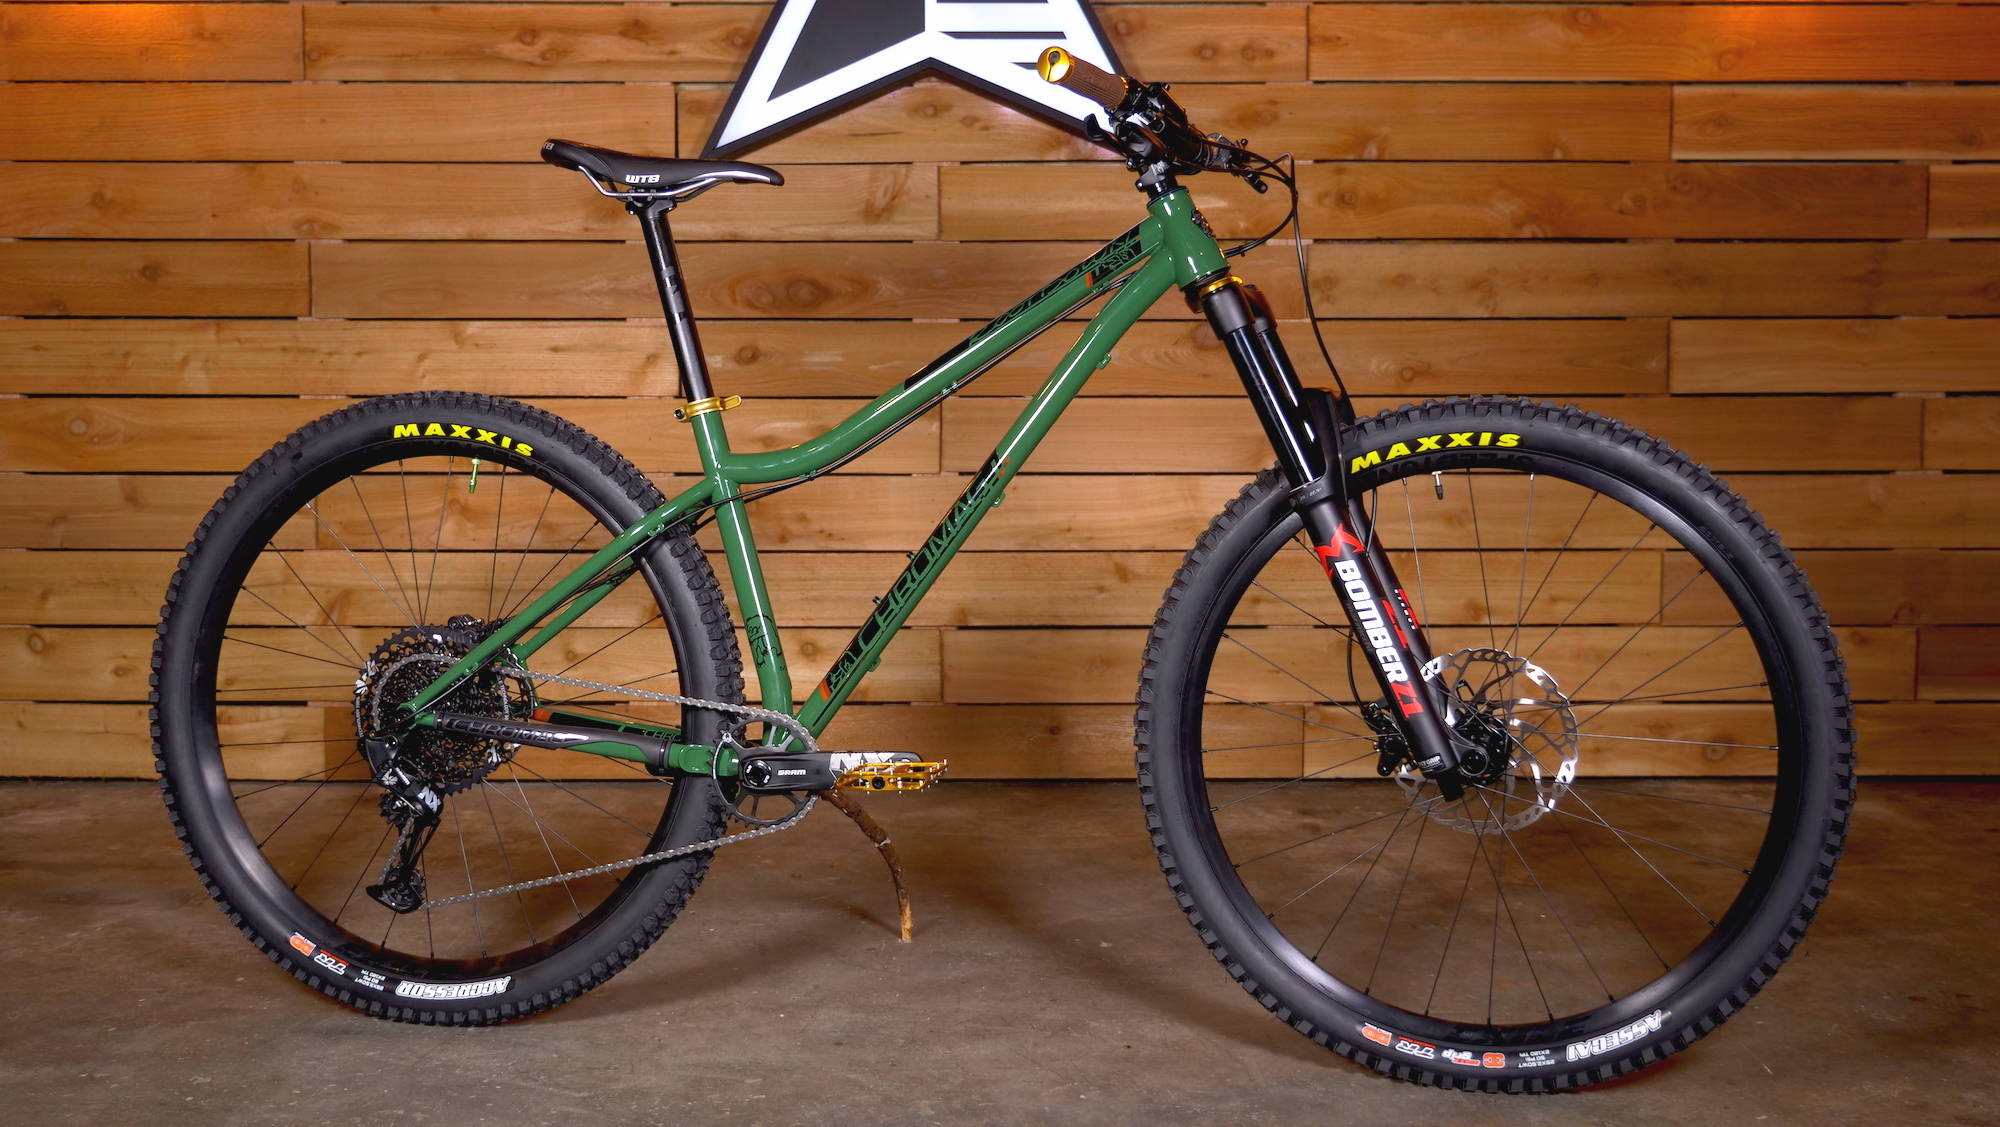 2019 2020 2021 chromag rootdown custom hunter green marzocchi budget maxxis sram nx eagle hardtail hard tail mtb mountain bike enduro